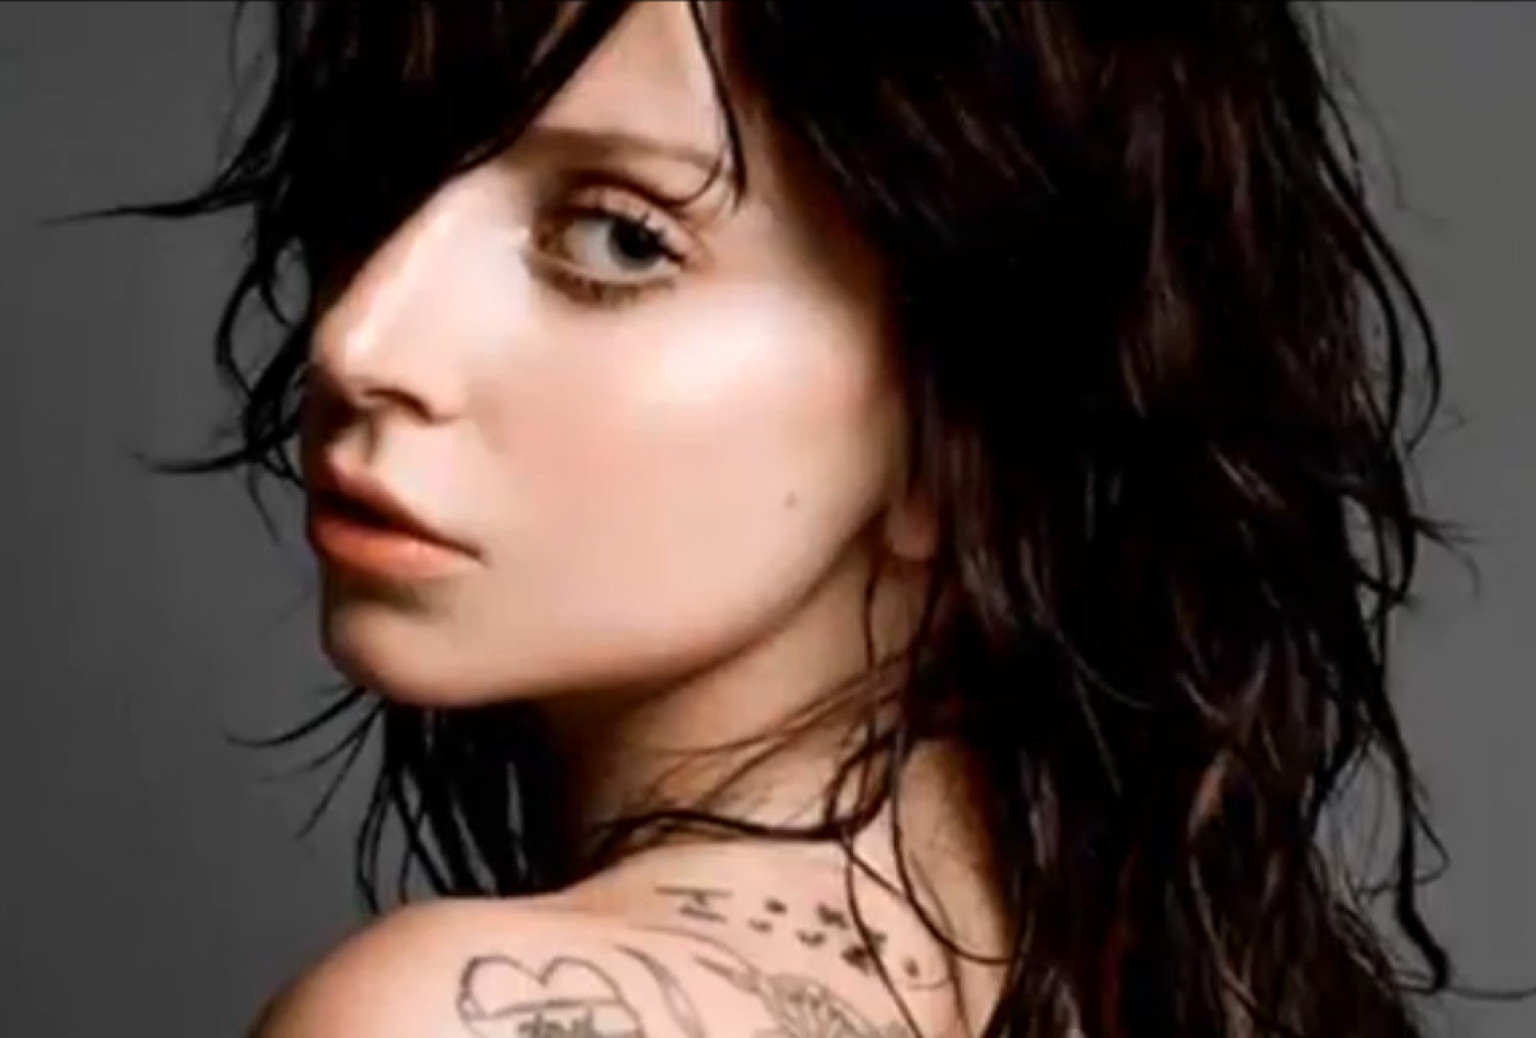 Lady Gaga Nude In V Magazine Talks New Look And Tumultuous Past NSFW PHOTOS